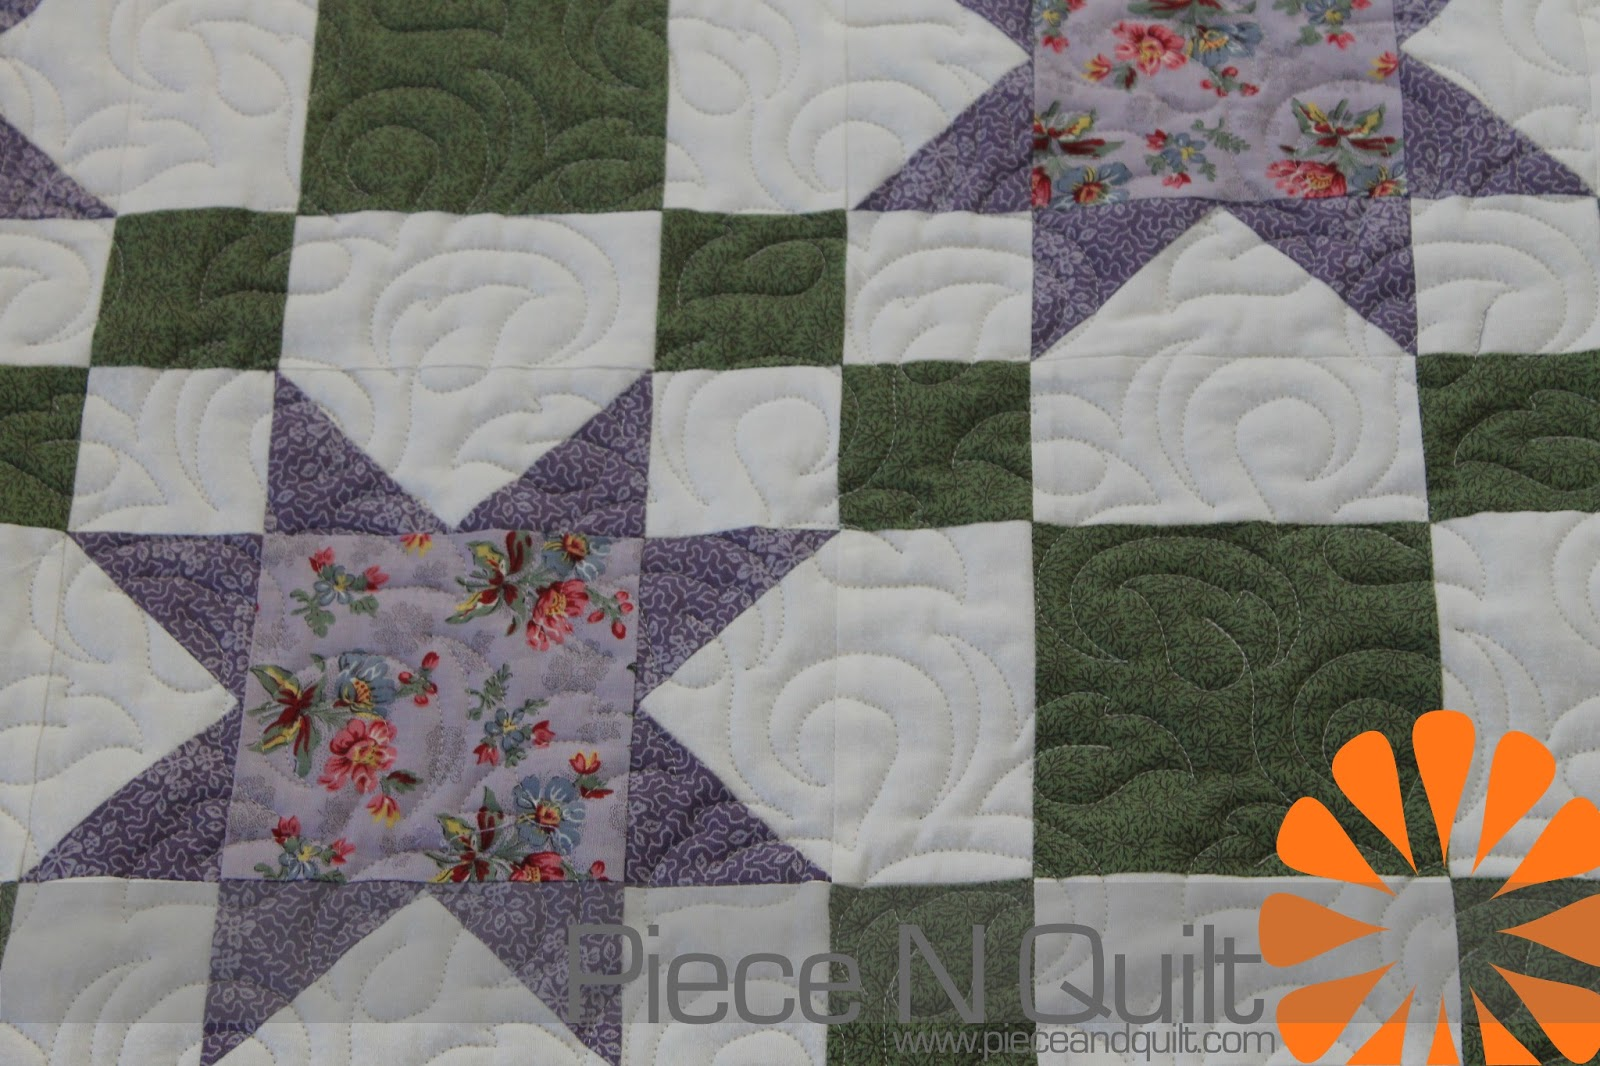 Piece N Quilt: Nine Patches & Sawtooth Stars